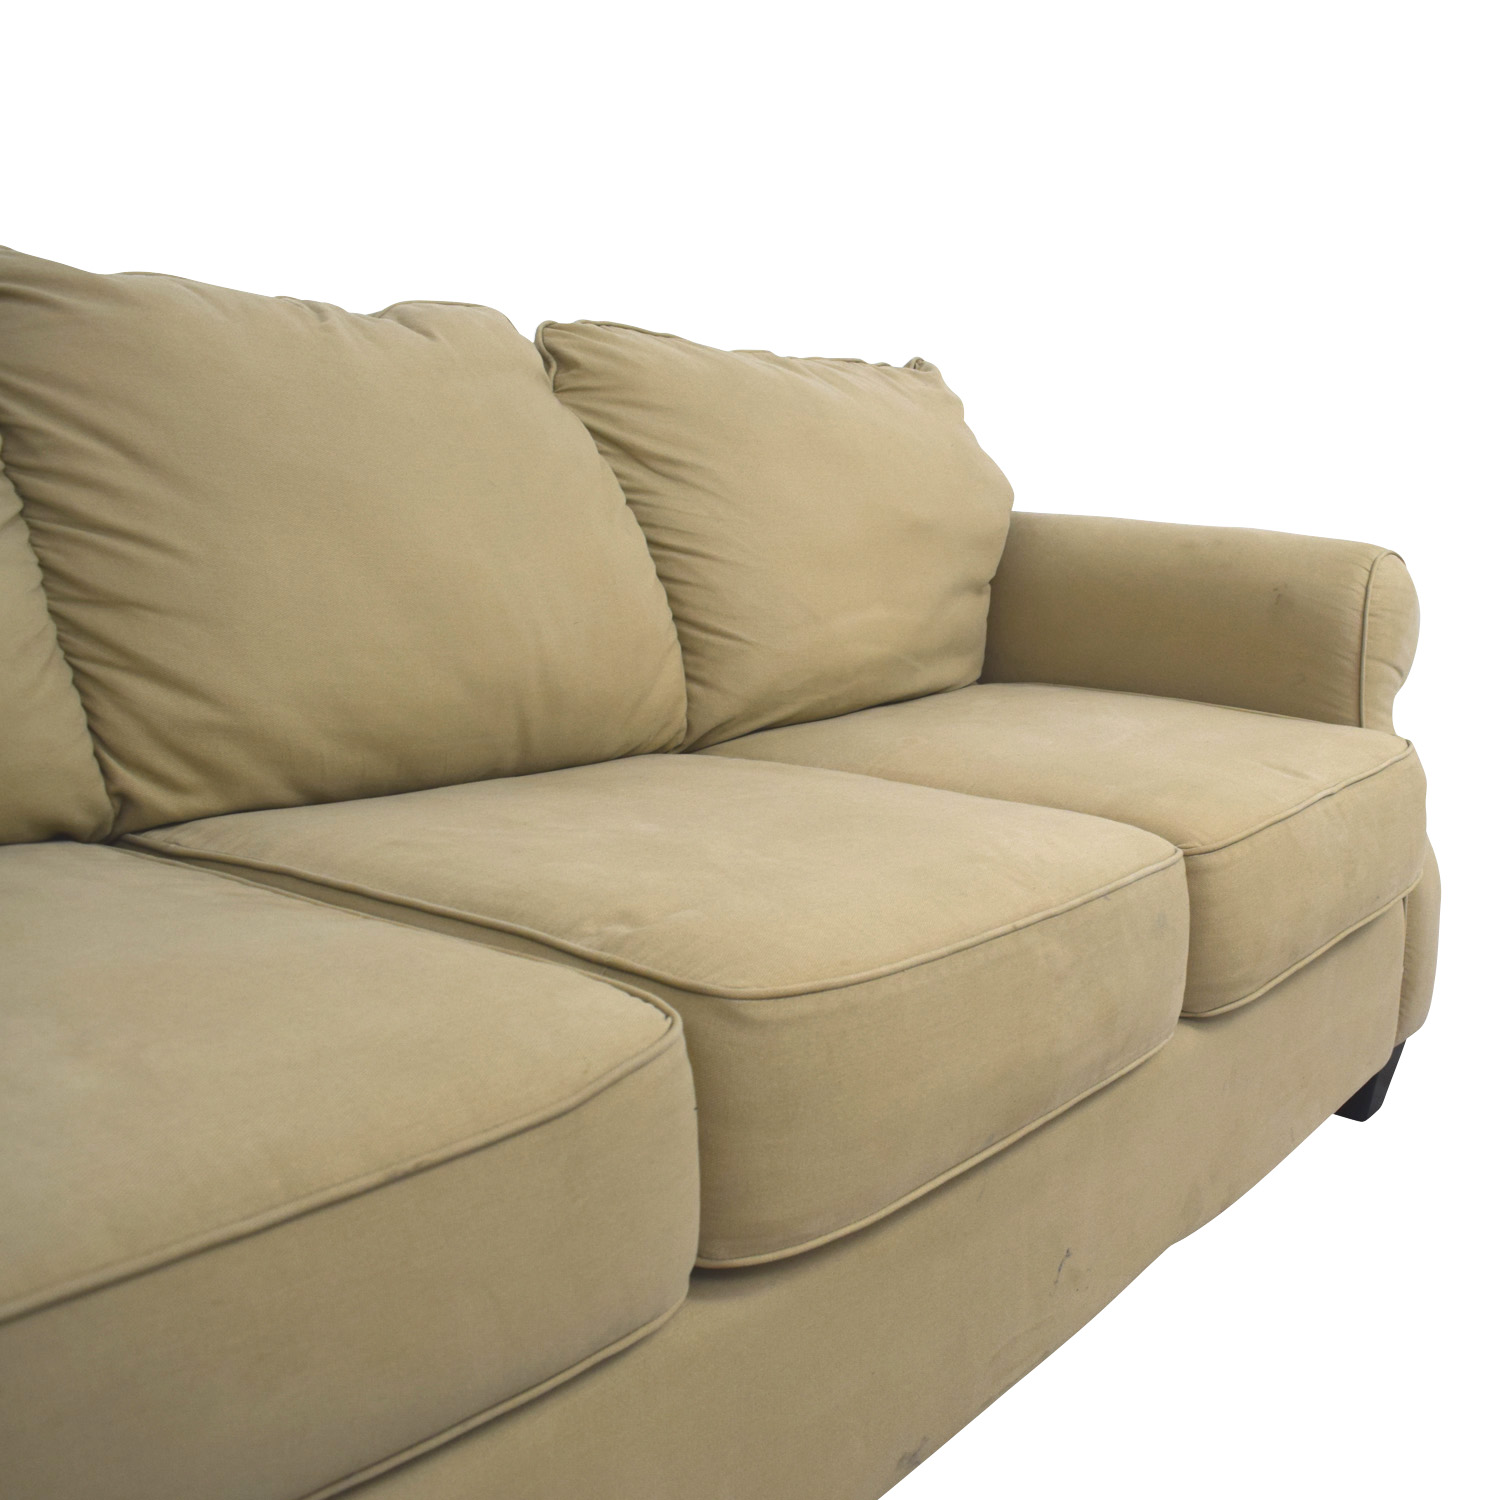 Beige Three-Cushion Curved Arm Sofa dimensions